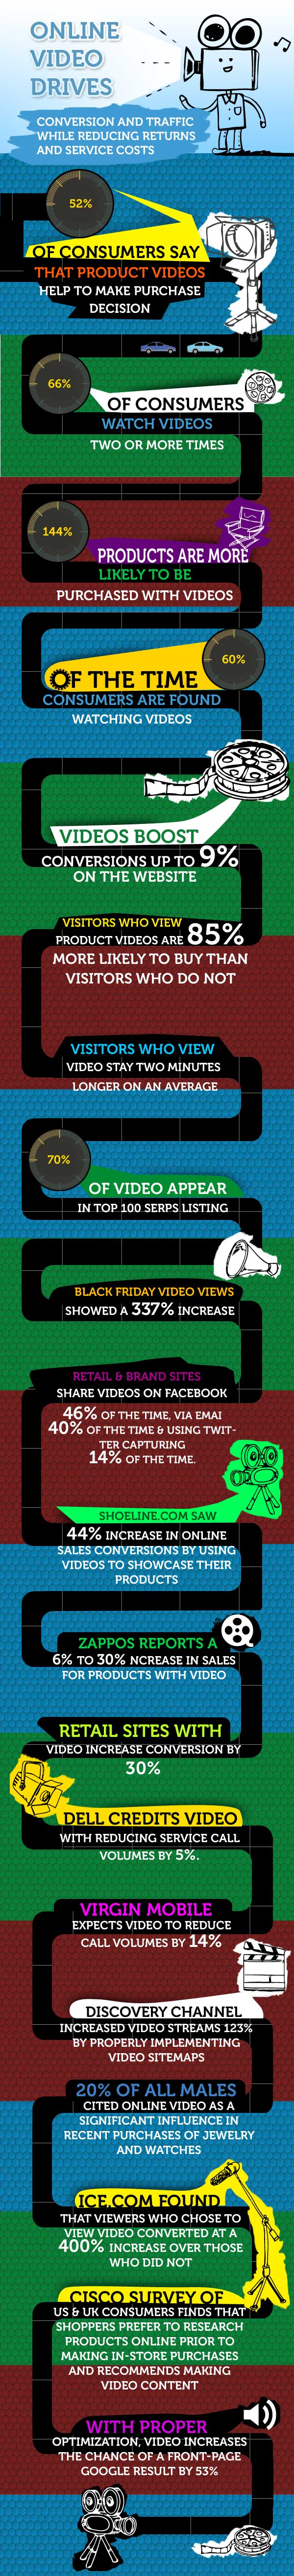 Online Video Drives Conversions and Traffic